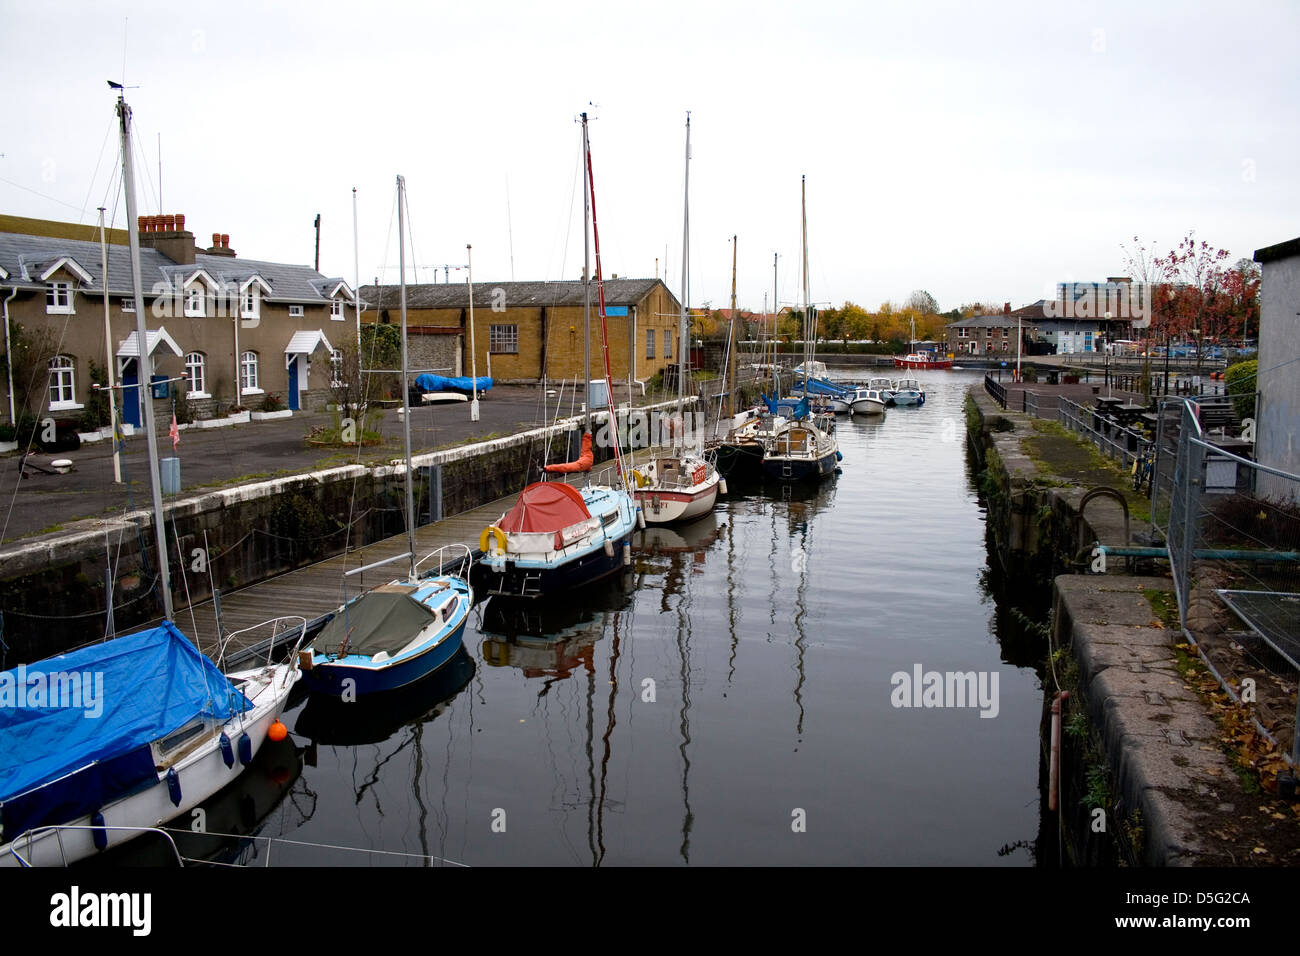 Boats in a harbour in Bristol, England, UK - Stock Image